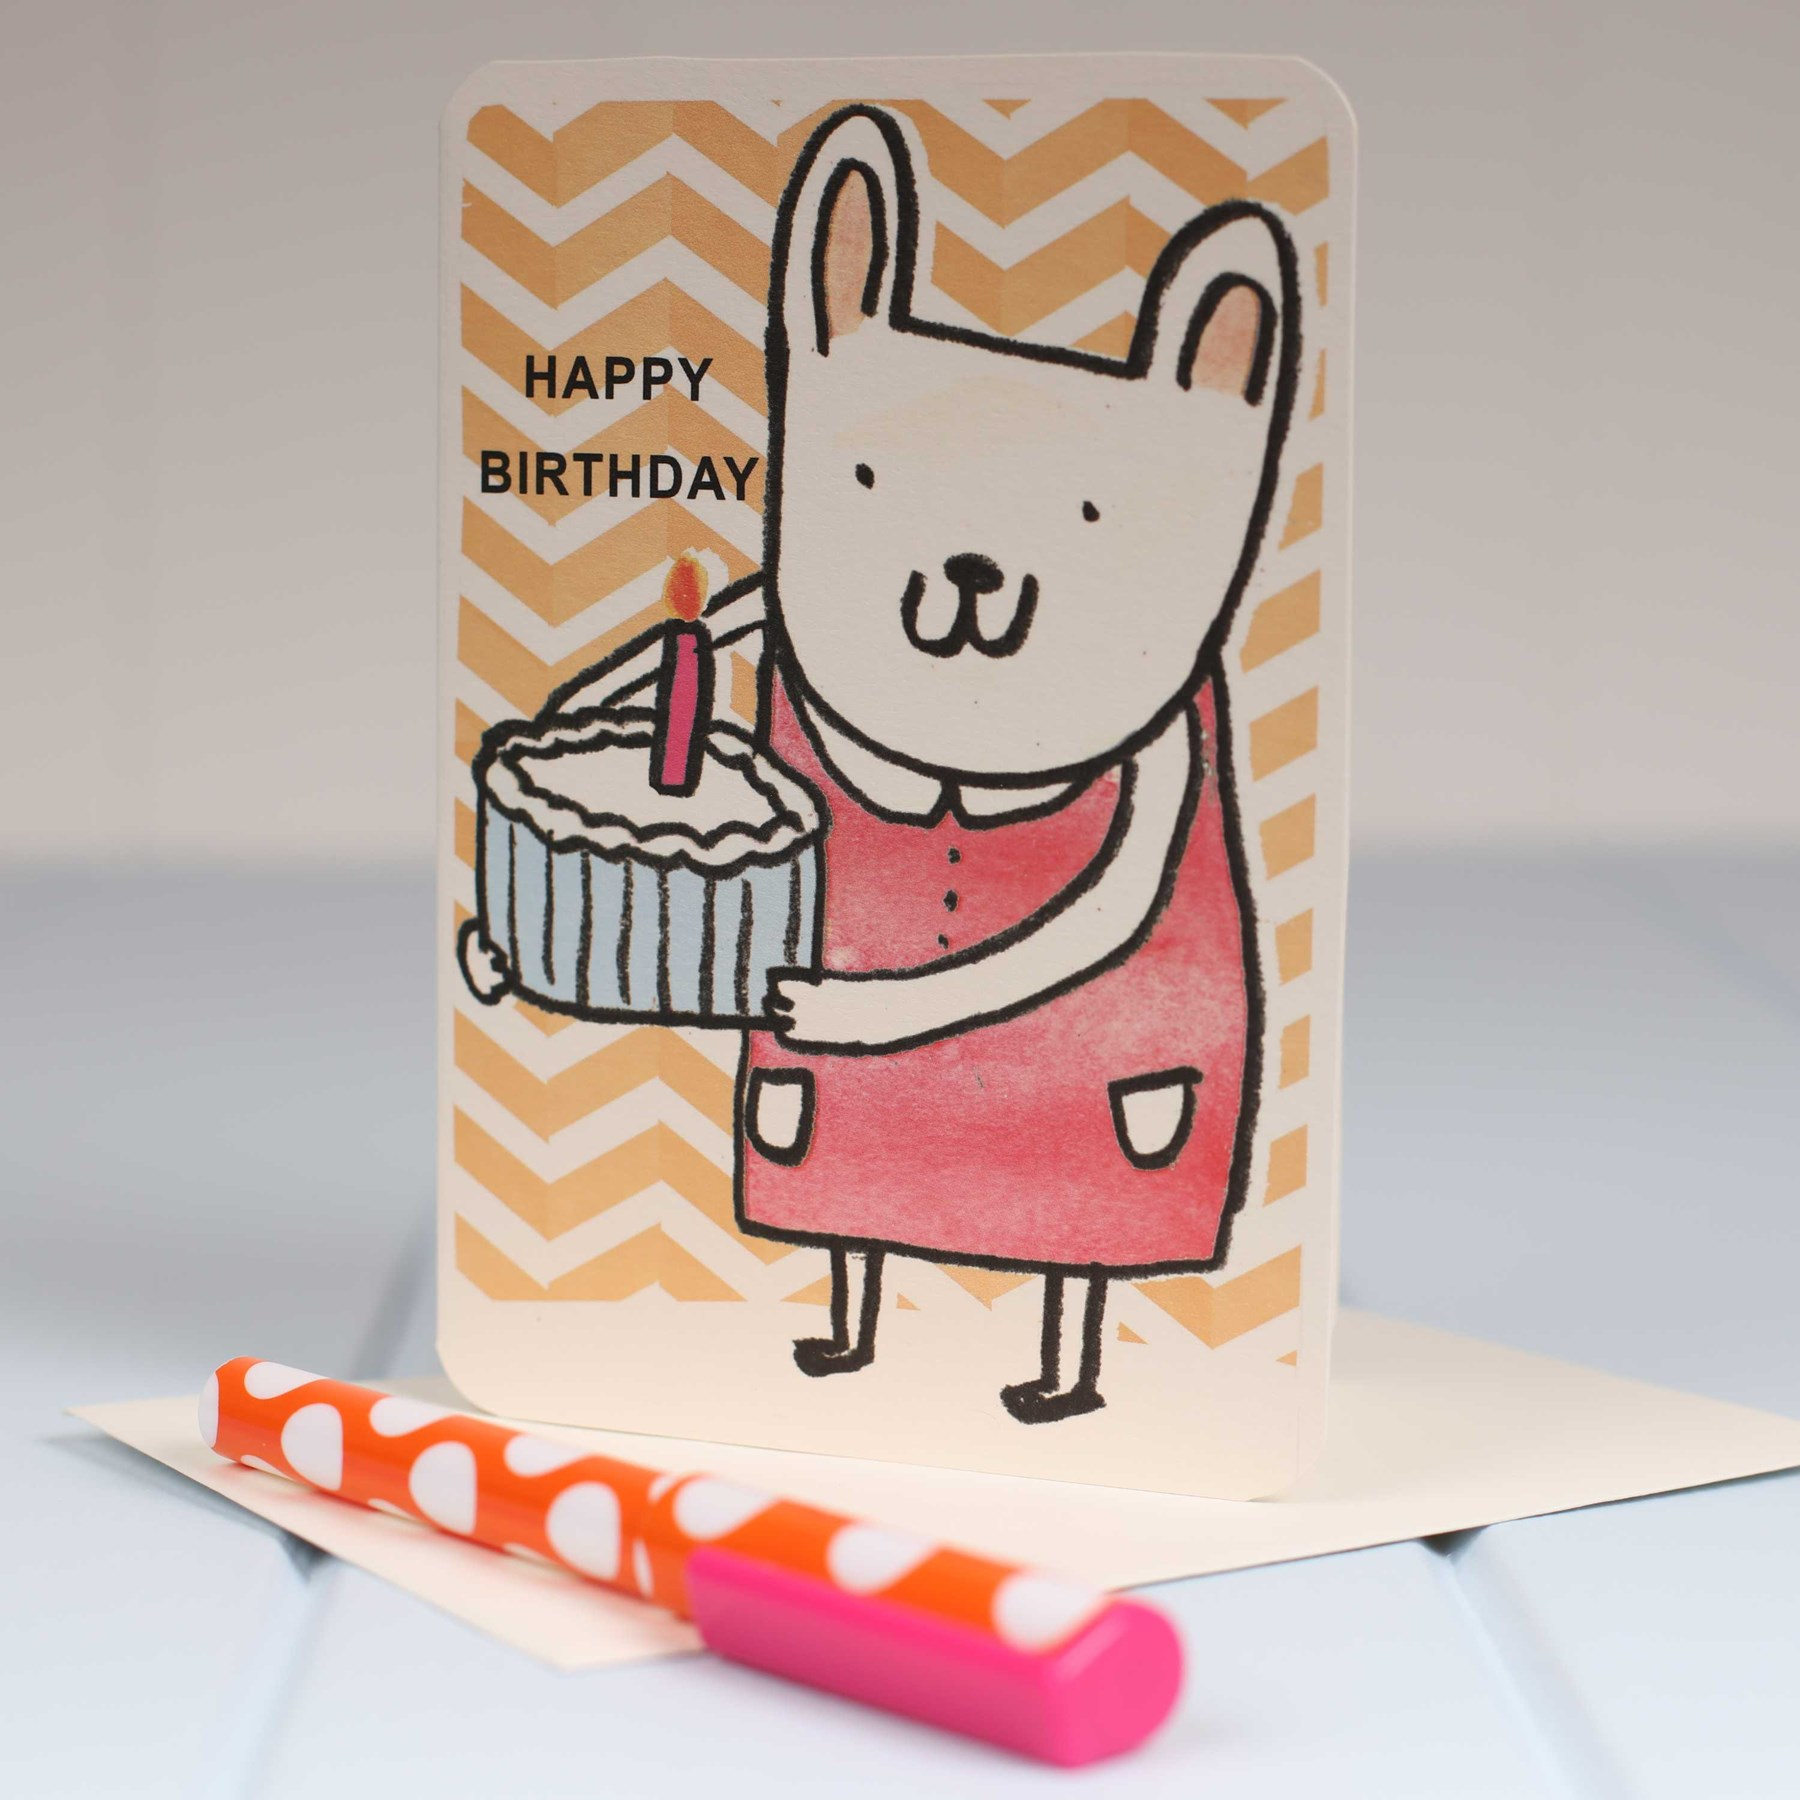 Bunny Candle Cake Birthday Card